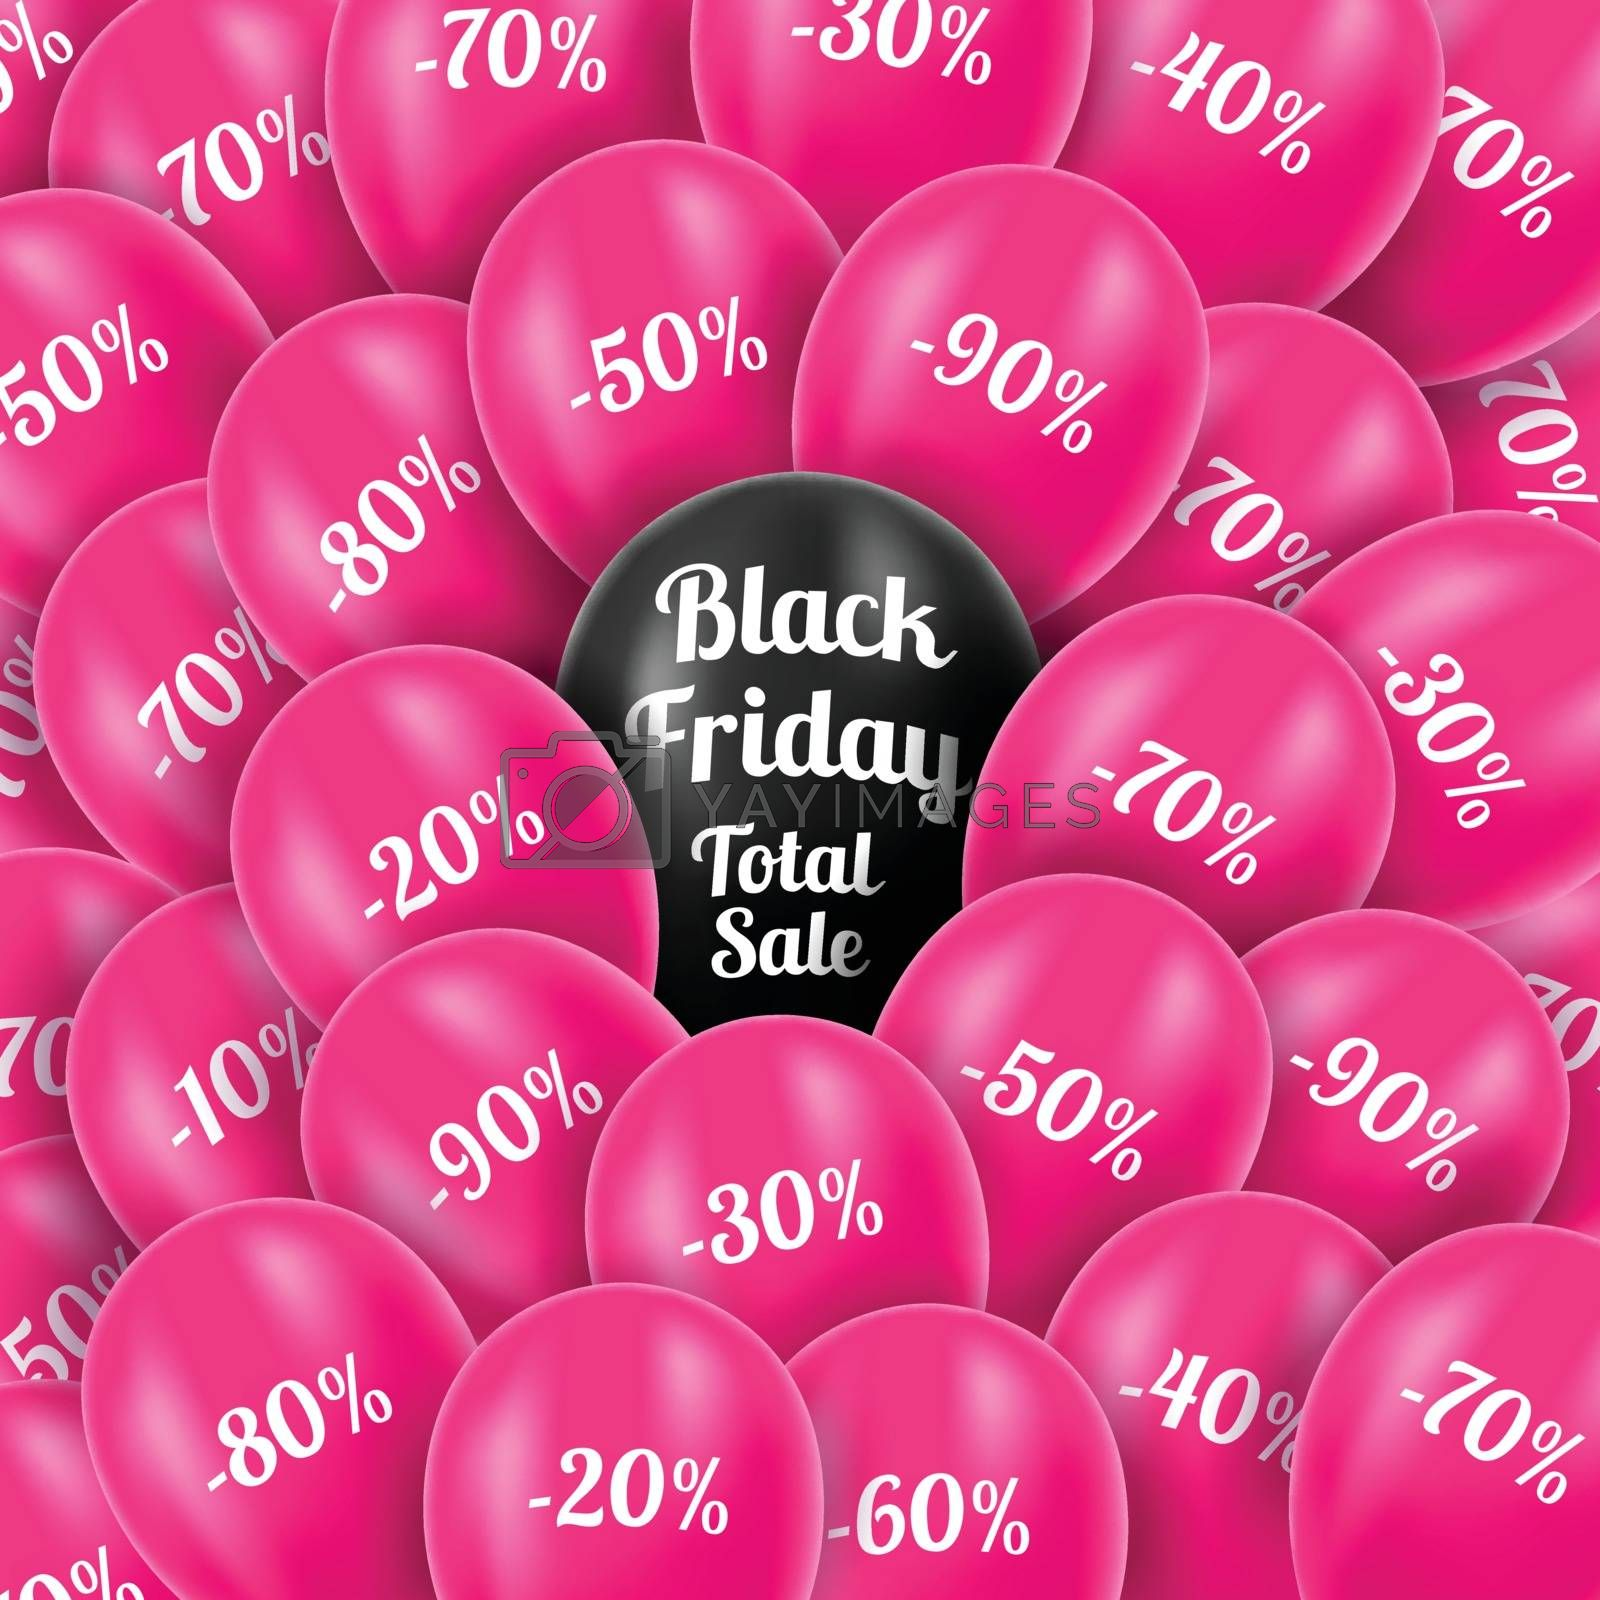 Vector. Black Friday. Realistic pink helium balloons with discounts. Background Black Friday. Total sales. Celebratory background with pink balloons.